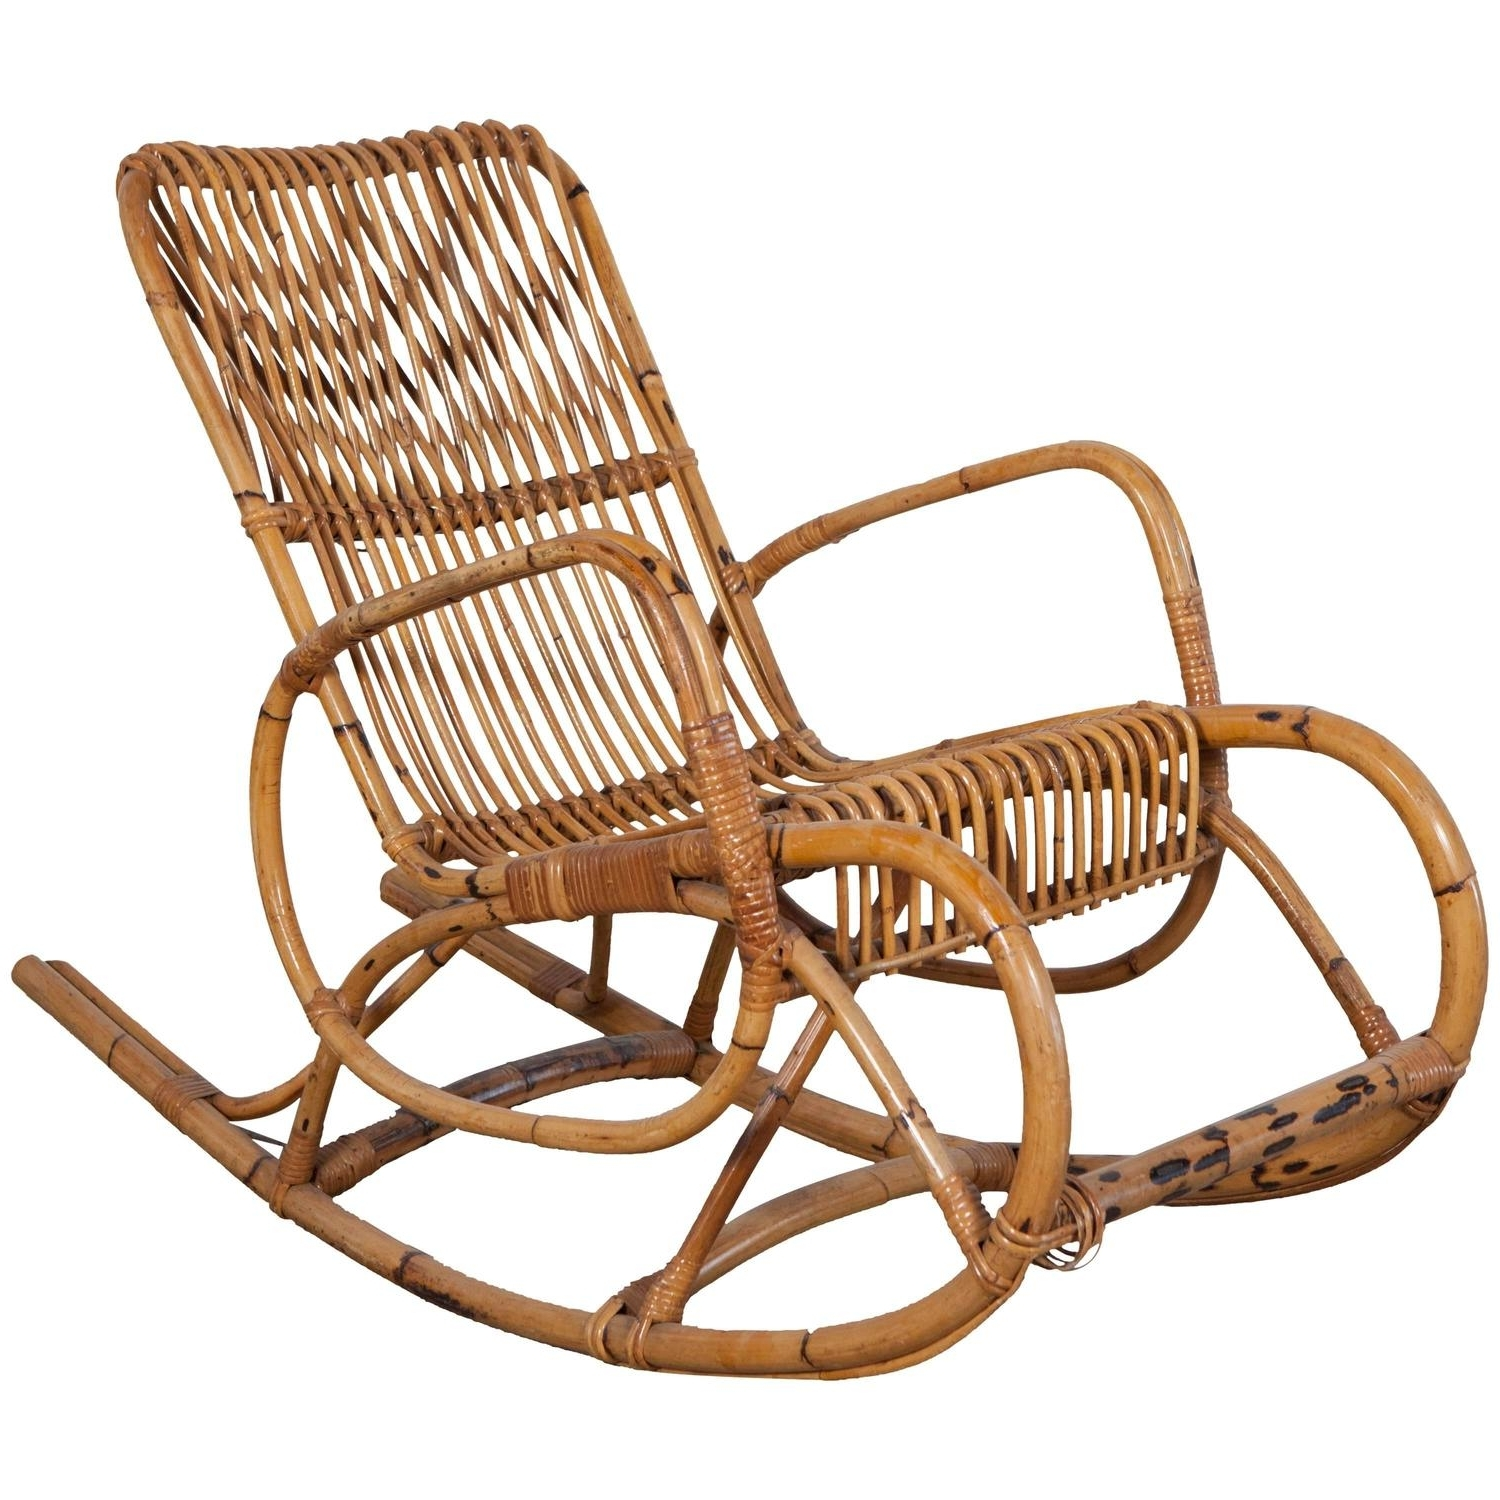 Preferred Vintage Italian Bamboo Rocking Chair With Square Arms At 1Stdibs Throughout Vintage Outdoor Rocking Chairs (View 18 of 20)